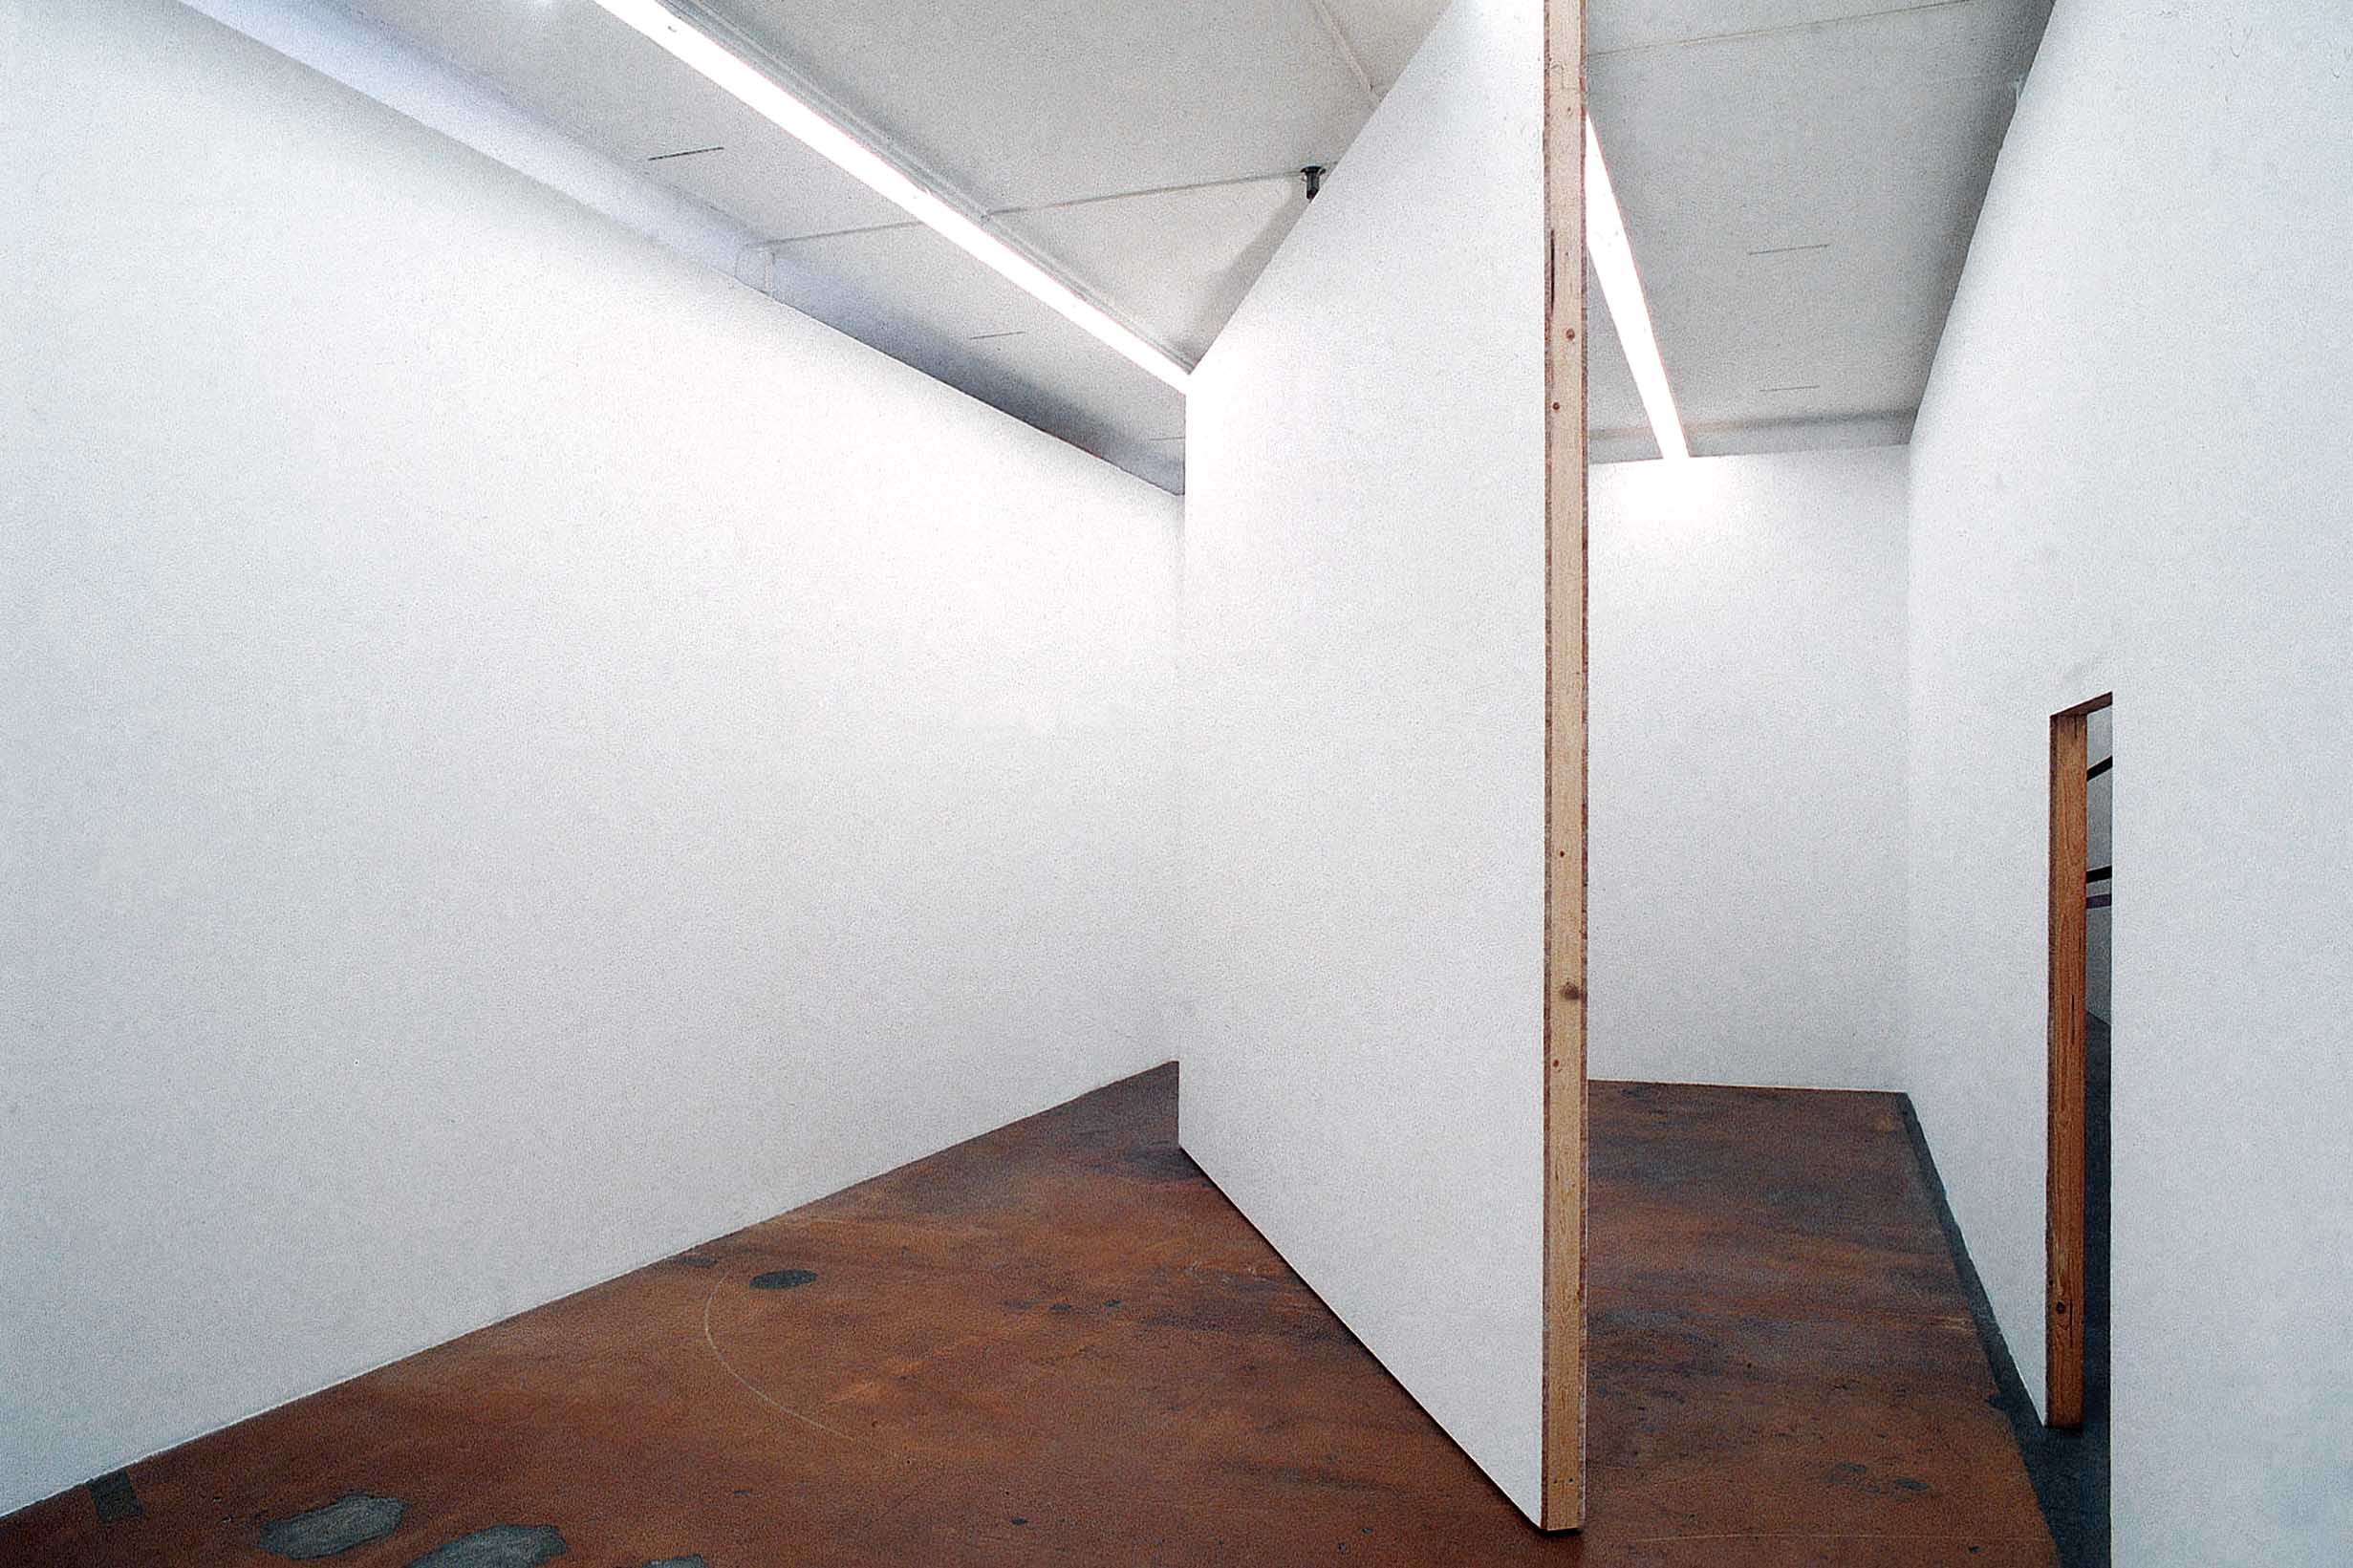 Untitled (A Room) by Heimo Zobernig